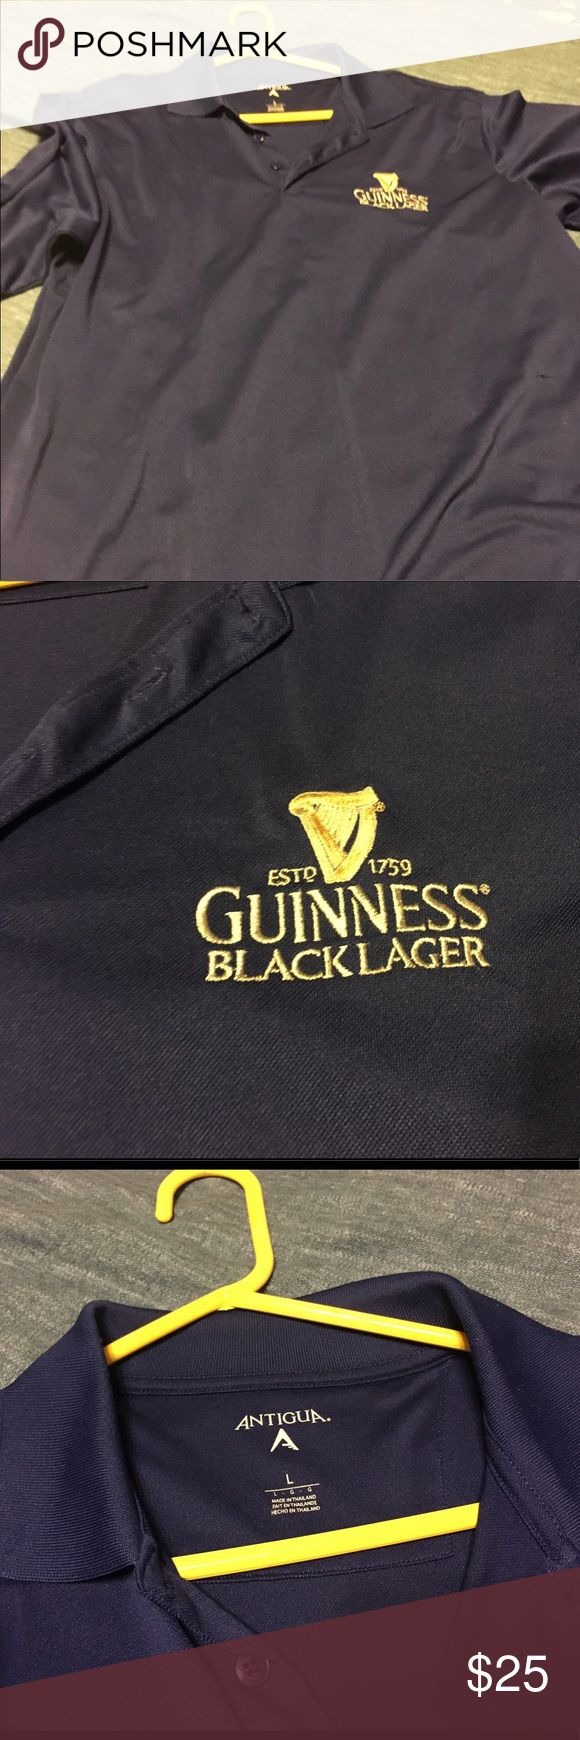 Guinness Black Lager Golf/Polo Style Shirt Guinness Black Lager Golf/Polo Style Shirt, Navy, NWOT, never worn, smoke free home Antigua Shirts Polos